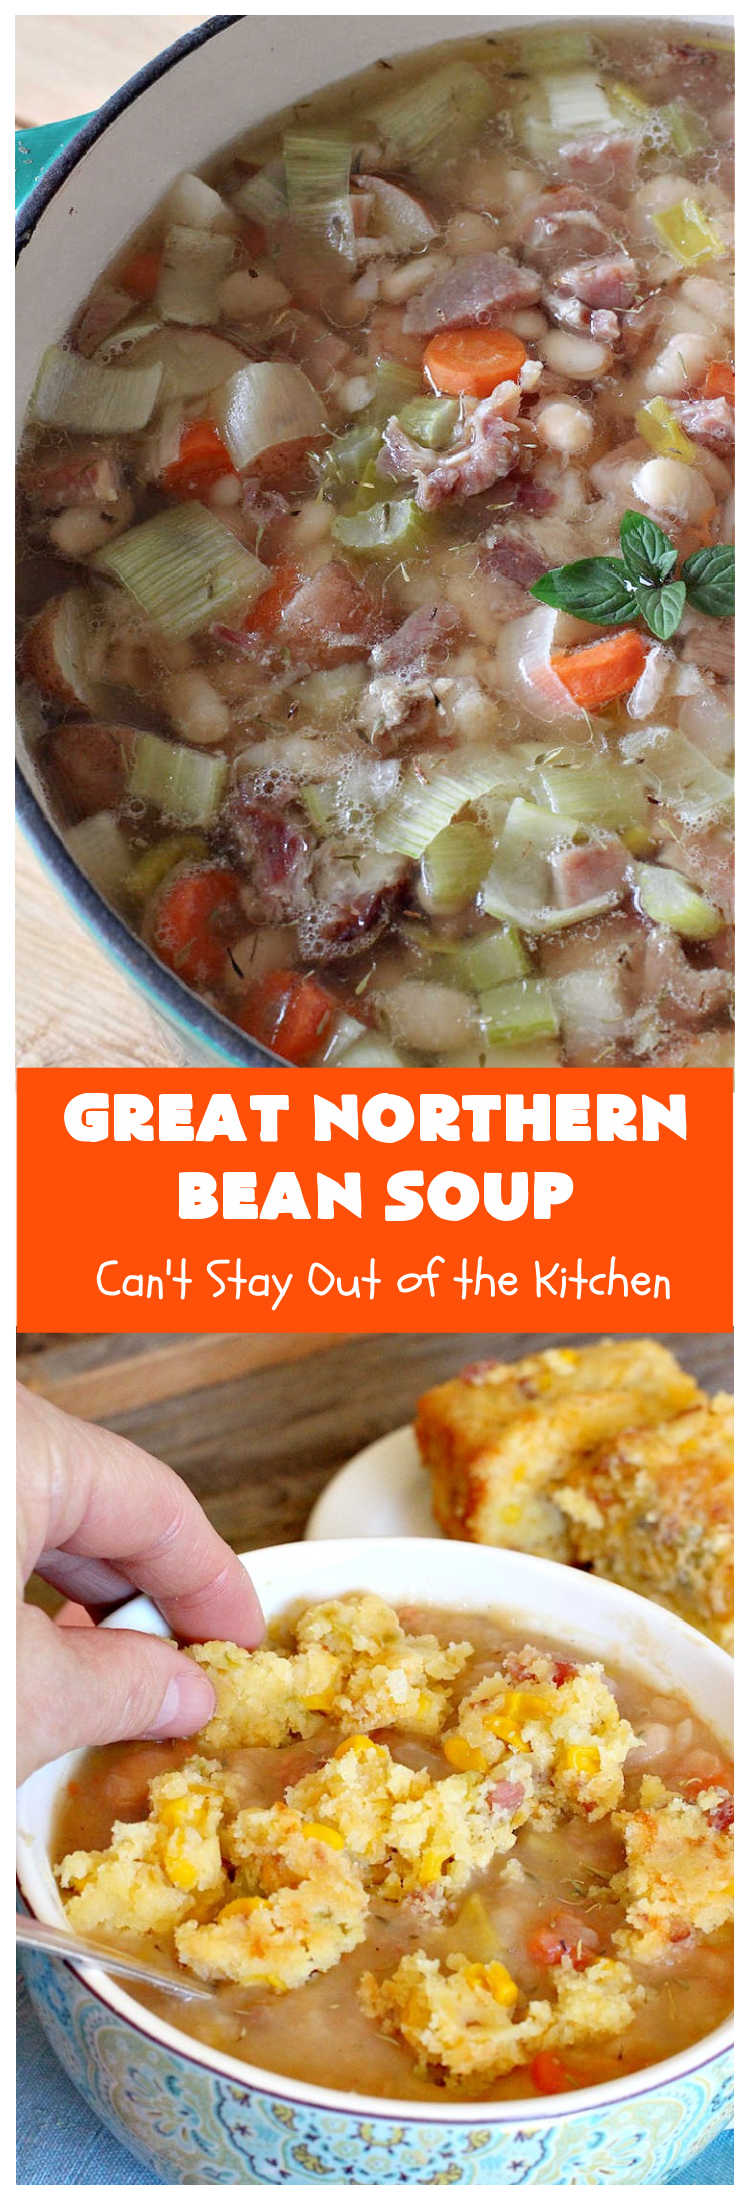 Great Northern Bean Soup   Can't Stay Out of the Kitchen   this is one of the BEST #HamAndBeanSoup #recipes I've ever eaten. This fantastic #GooseberryPatch #soup is hearty, filling, satisfying & irresistible comfort food. It's absolutely awesome served with #cornbread crumbed into it. Our company loved it! Great way to use up leftover #holiday #ham. #pork #GreatNorthernBeans #GreatNorthernBeanSoup #GlutenFree #ham #potatoes #carrots